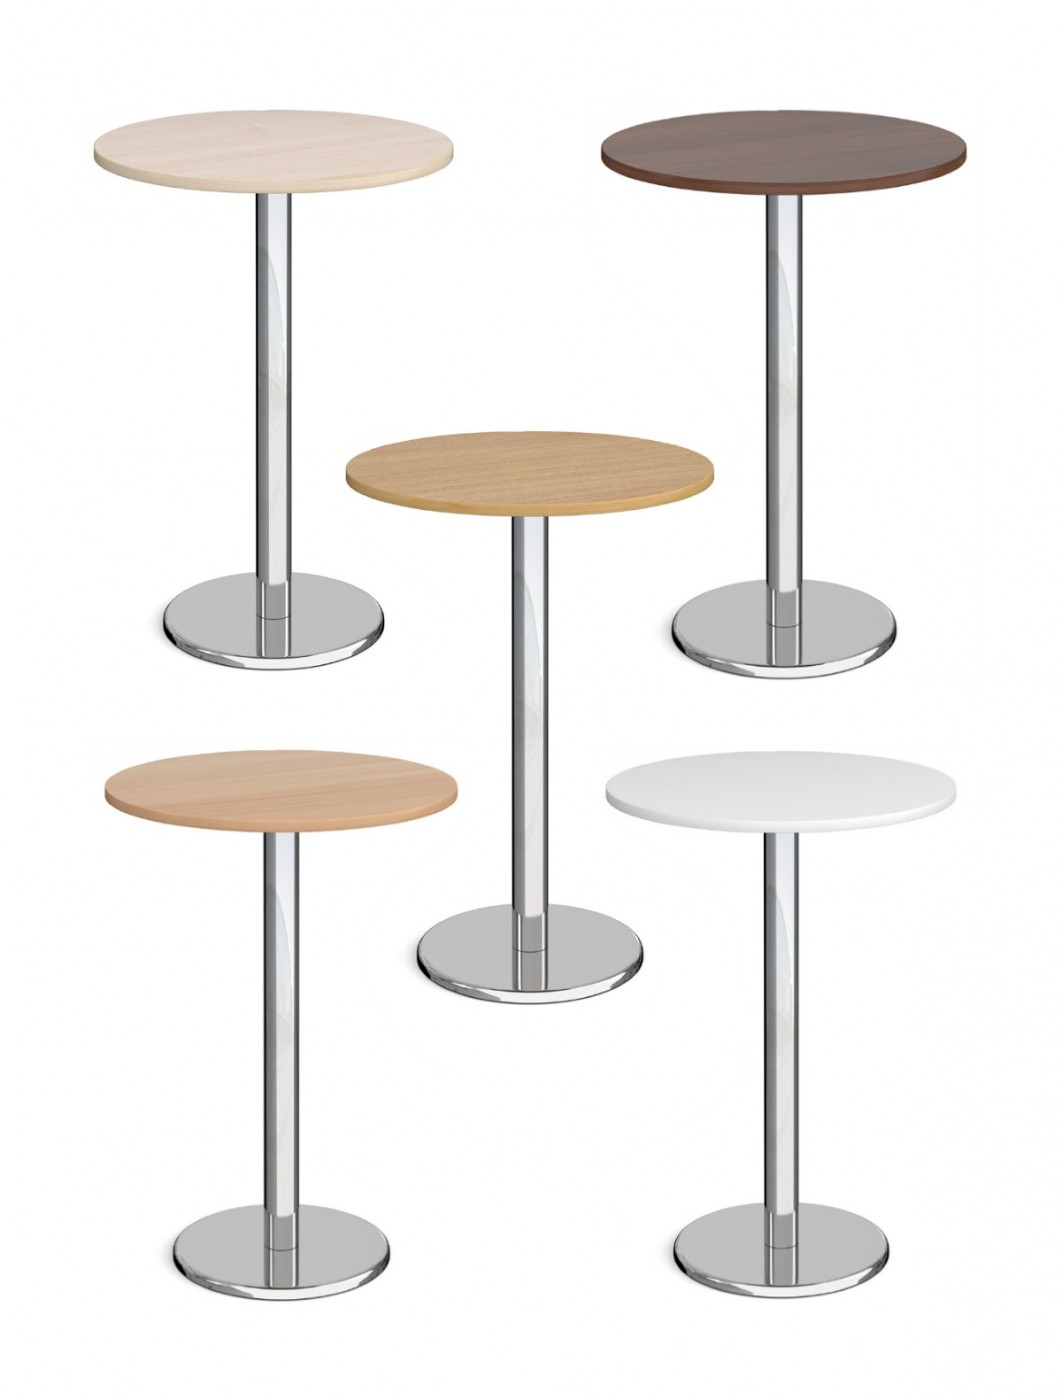 Round Poseur Table Pisa 800mm PPC800 by Dams